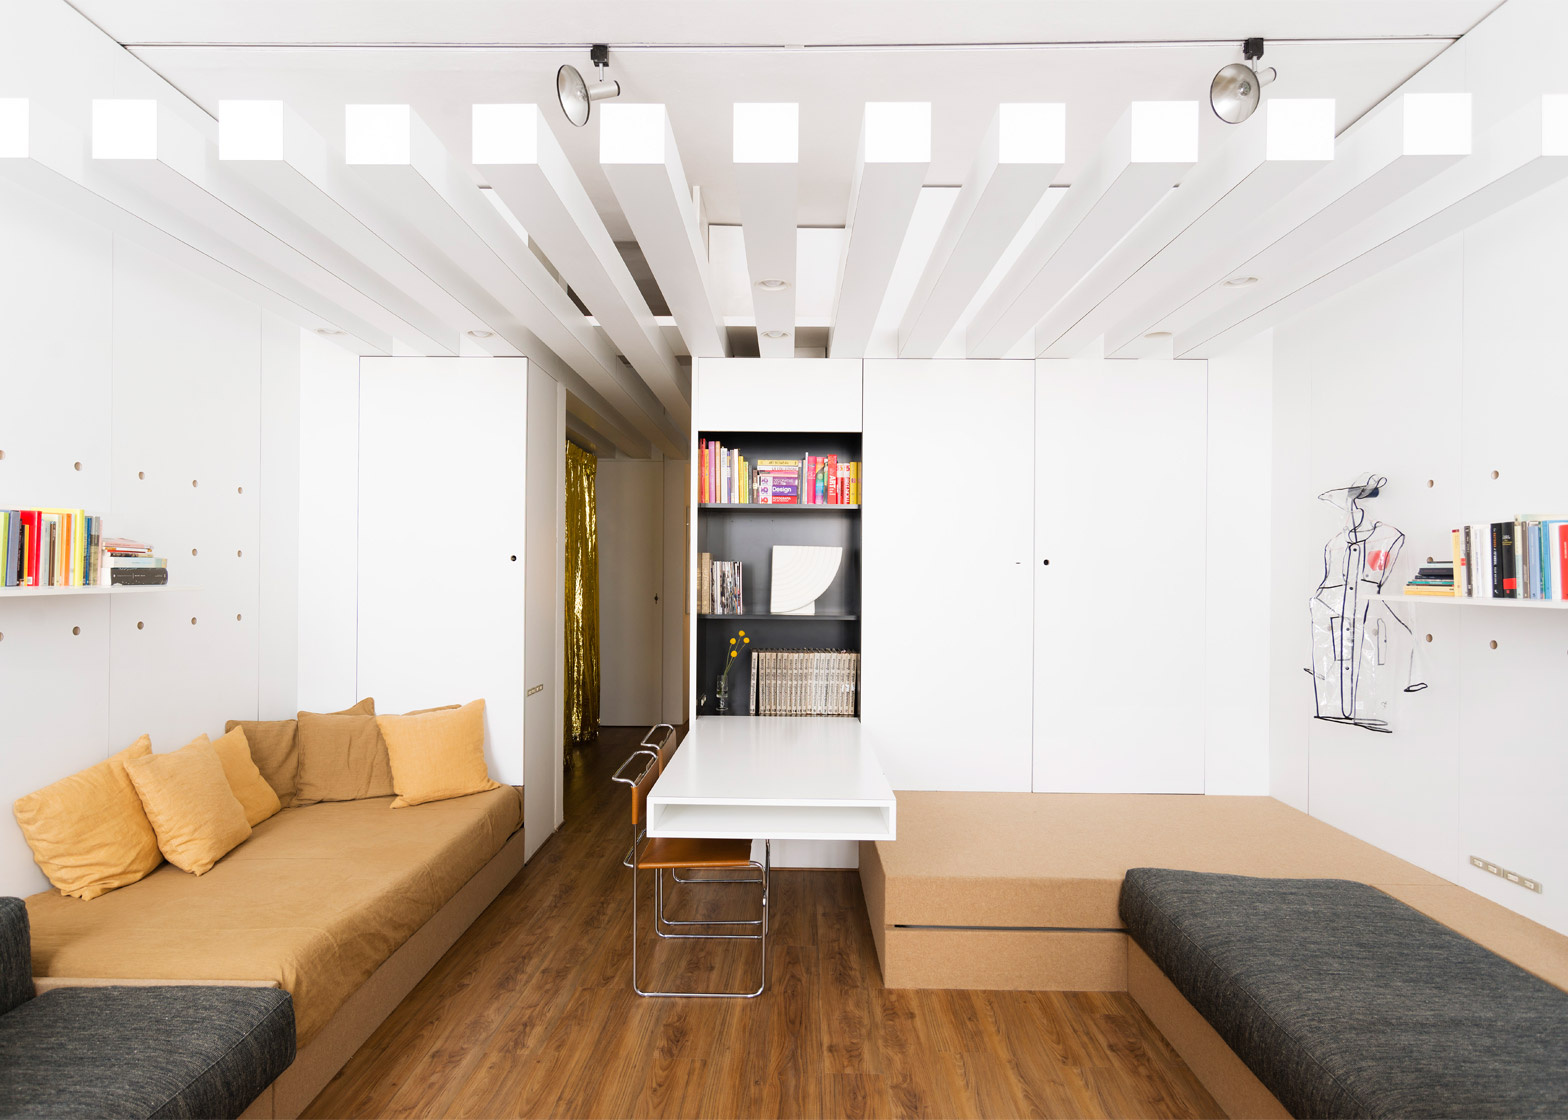 Home & Office in Florence by Silvia Allori